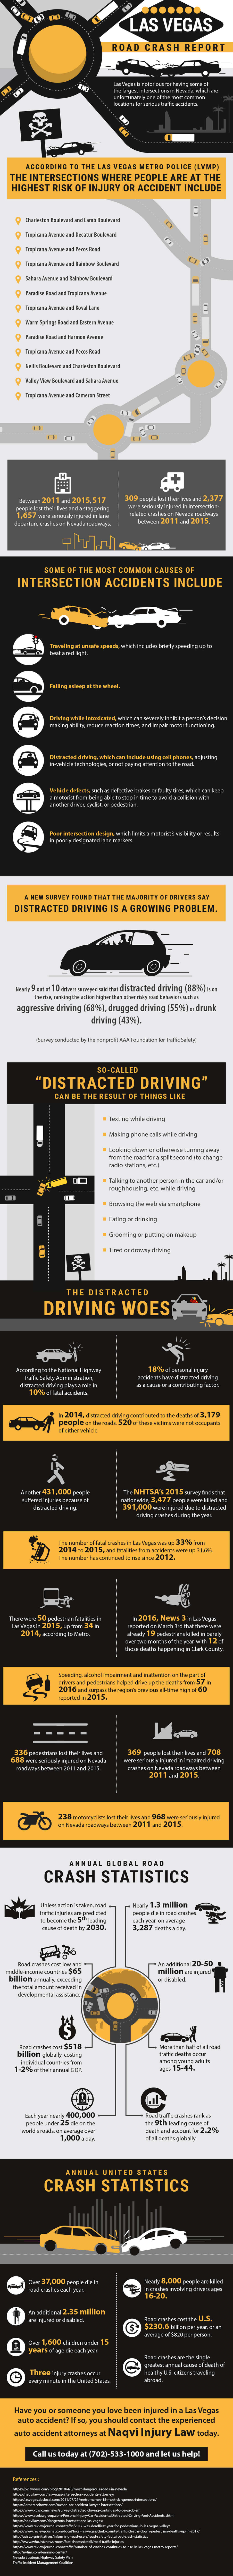 Las-Vegas-Road-Crash-infographic-plaza